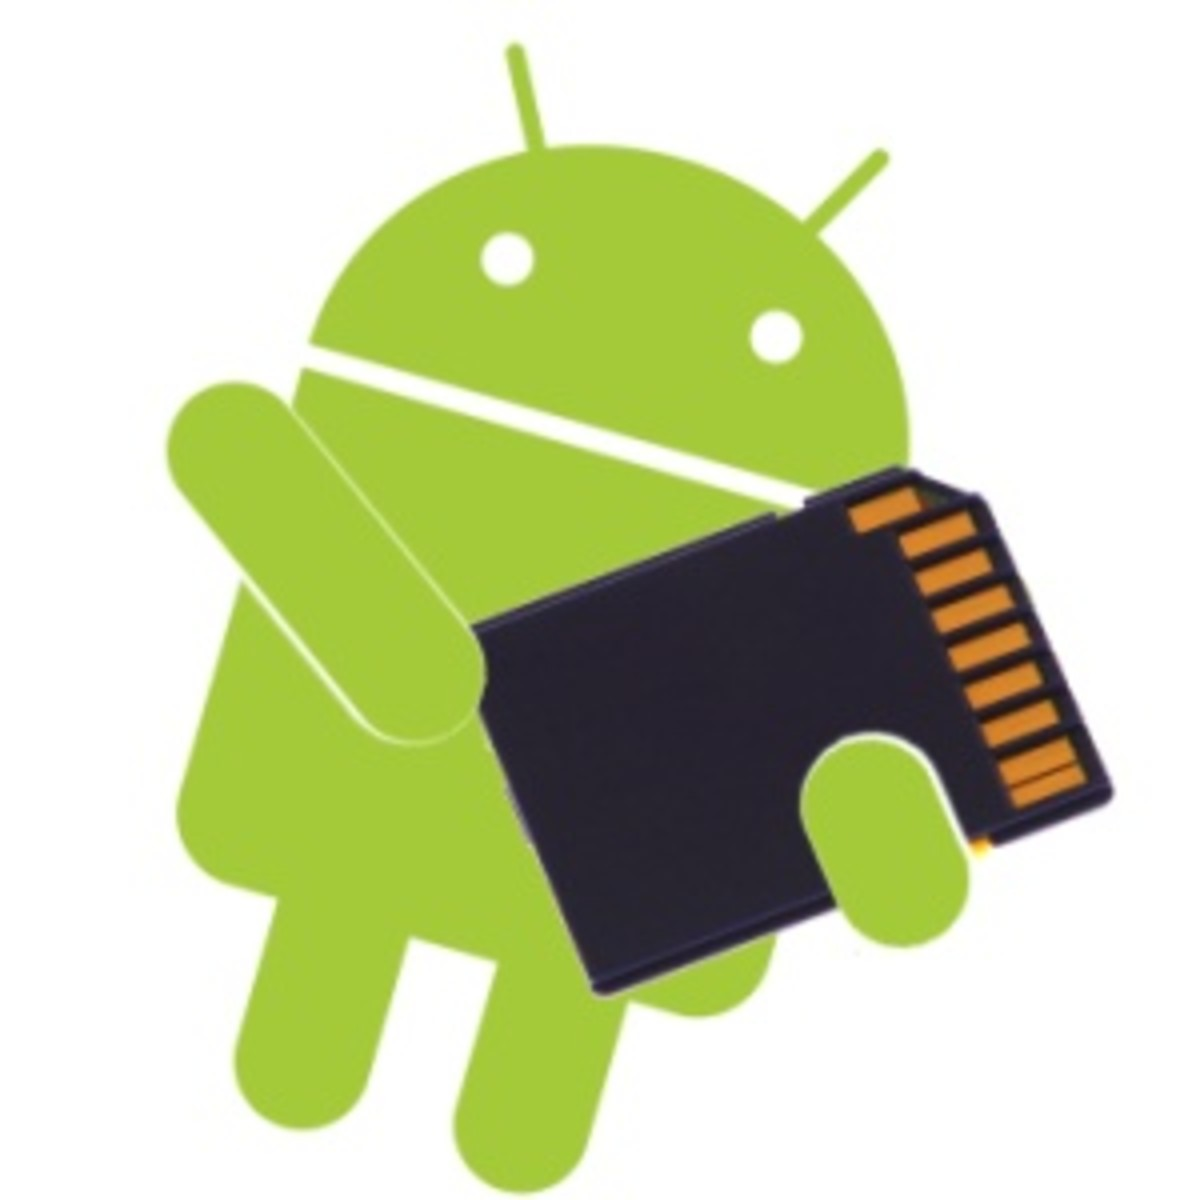 Store Apps to the Memory Card on Android